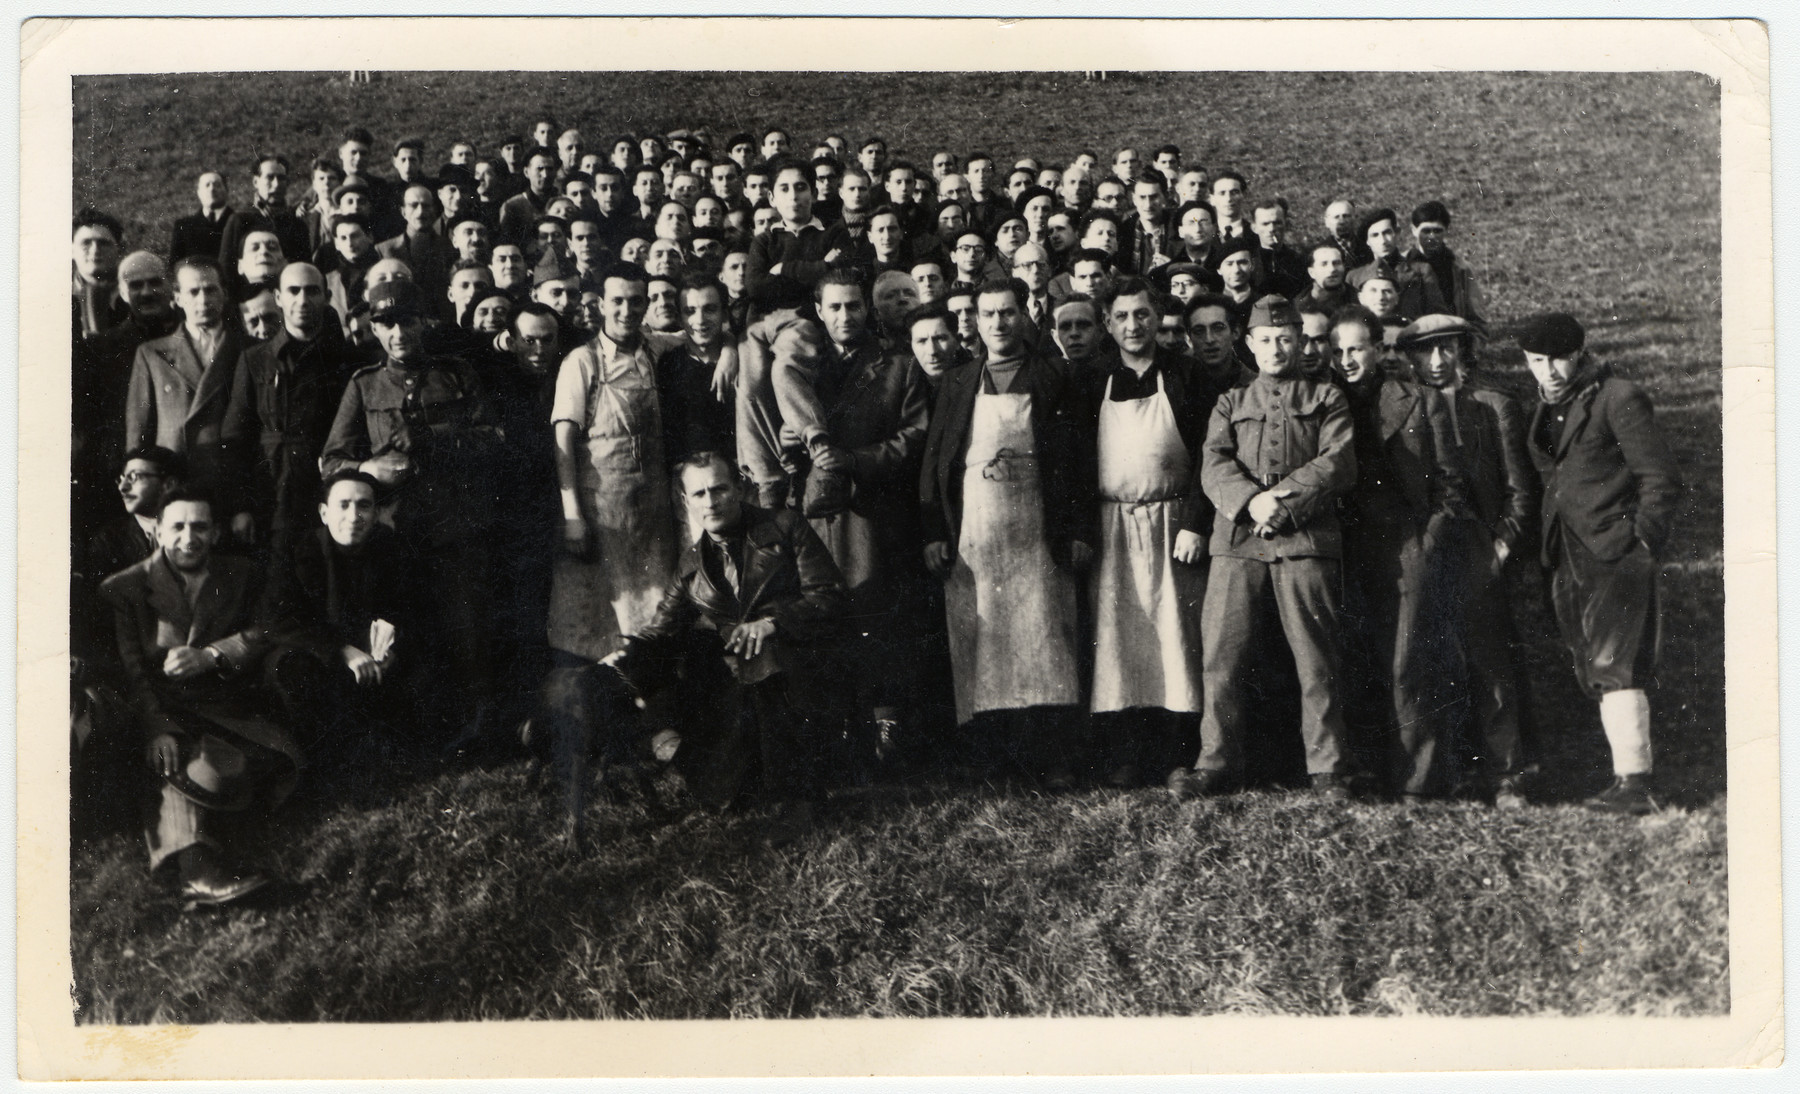 Group portrait of Jewish internees in an unidentified Swiss labor camp.  Max Schattner is standing in the first row on the far left.